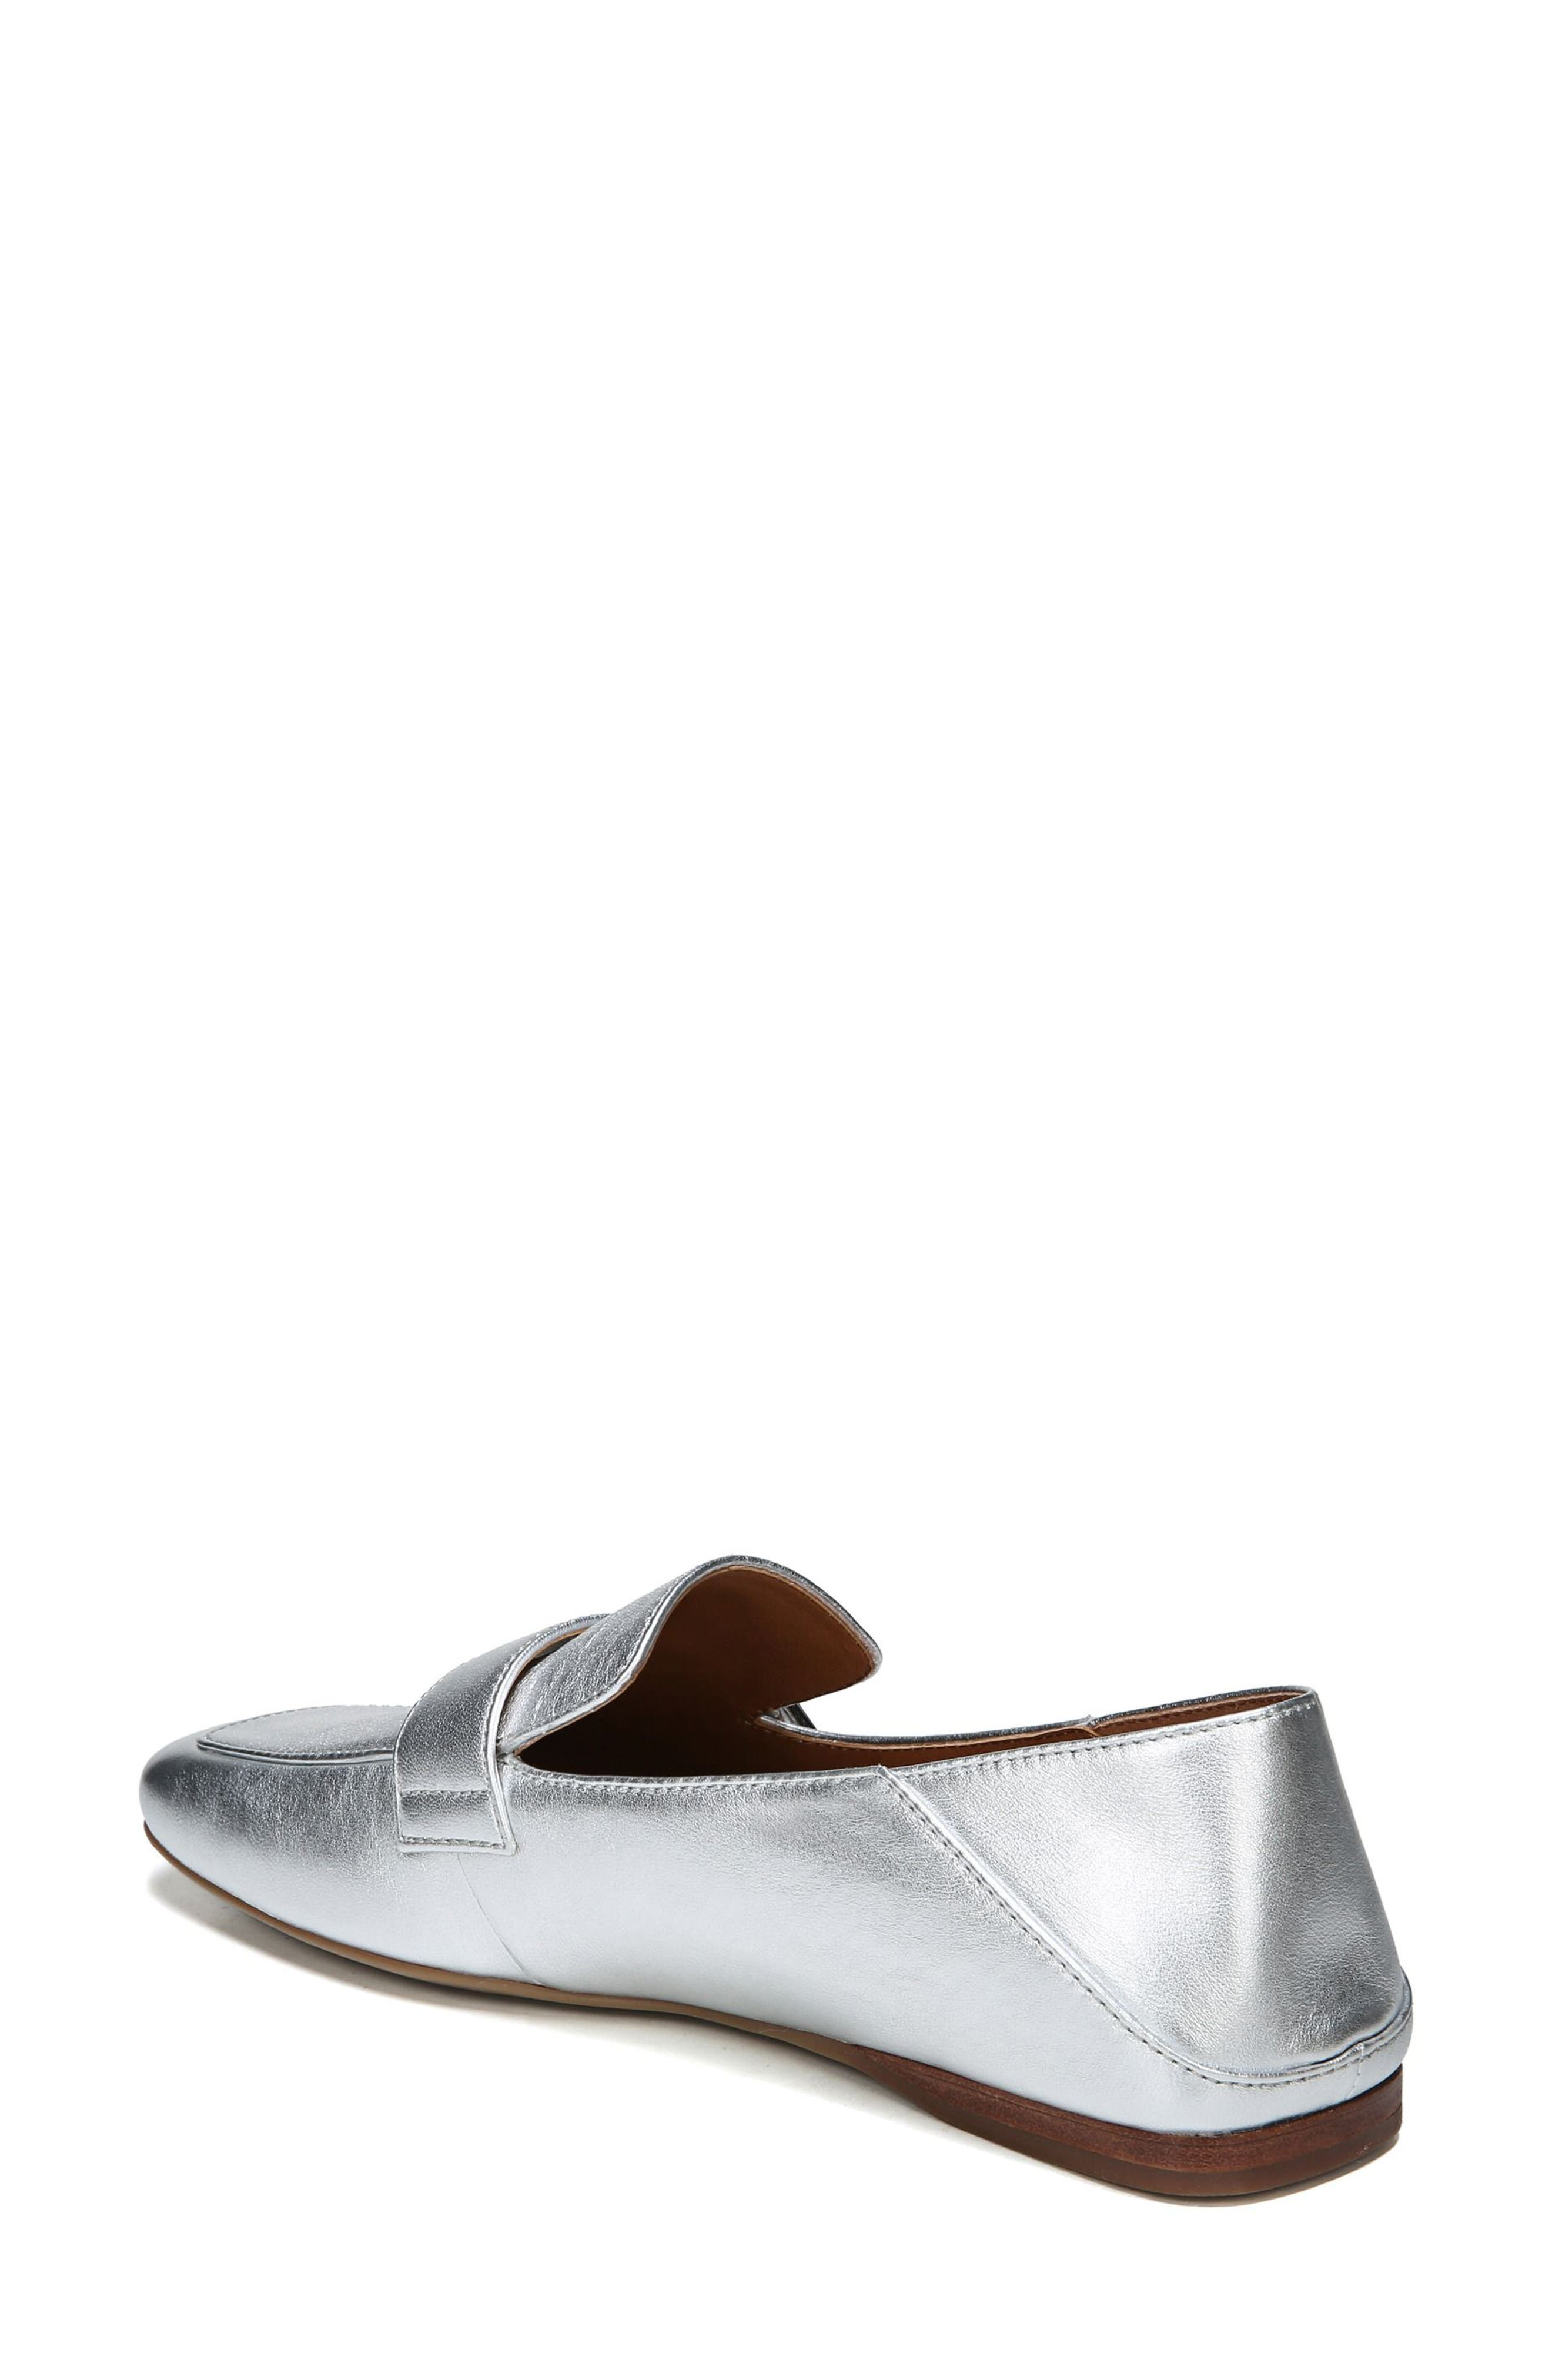 Valeres Loafer,                             Alternate thumbnail 3, color,                             Silver Metallic Leather